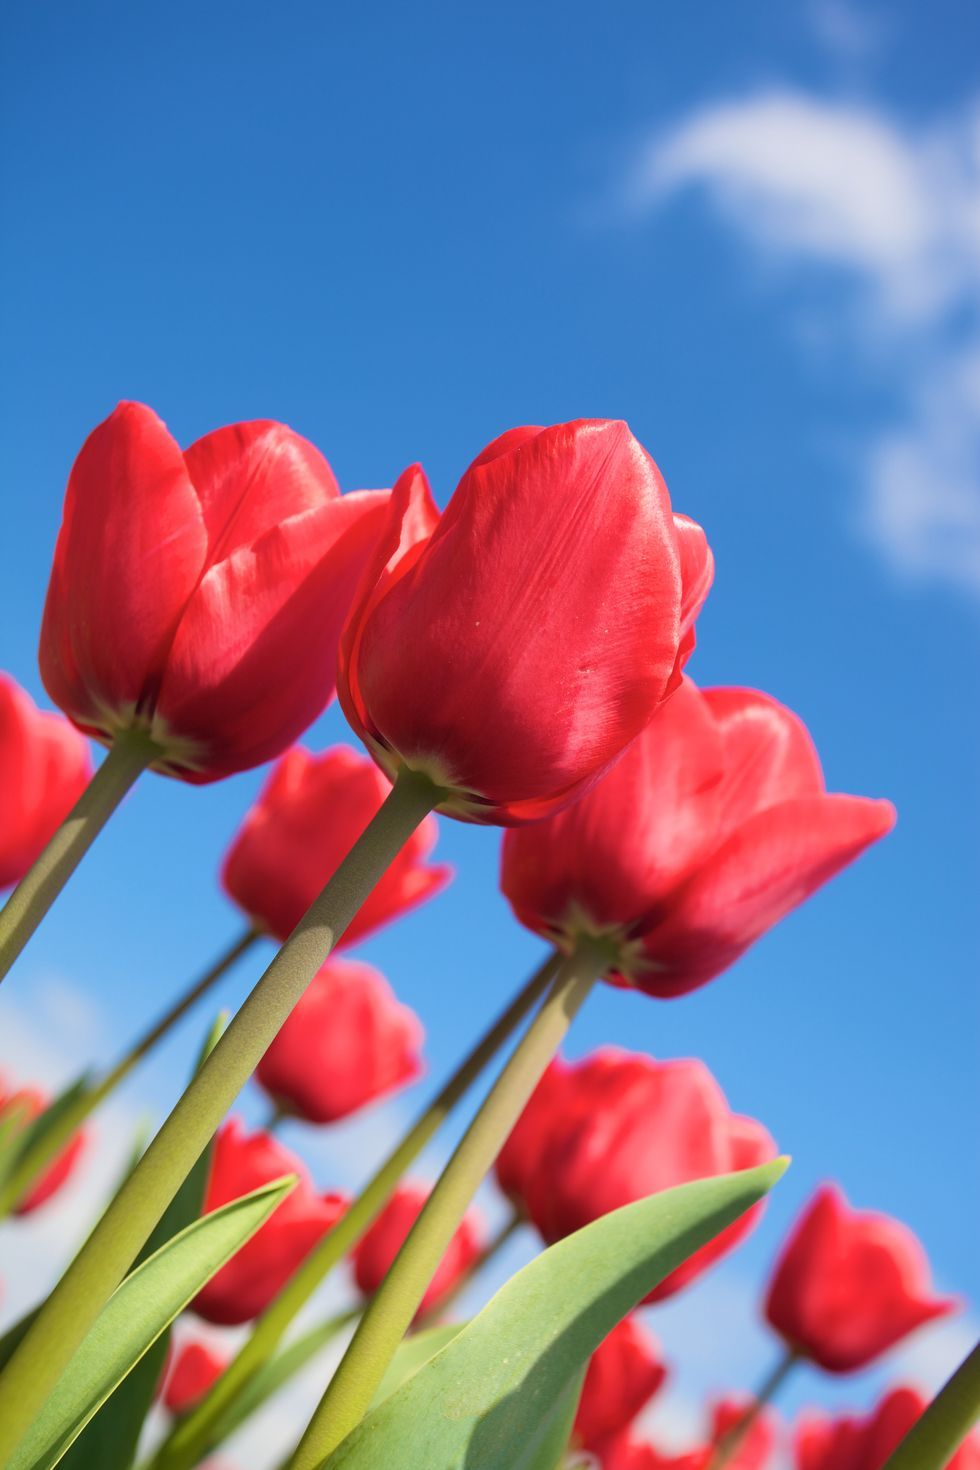 Red Tulips - Flower Meanings